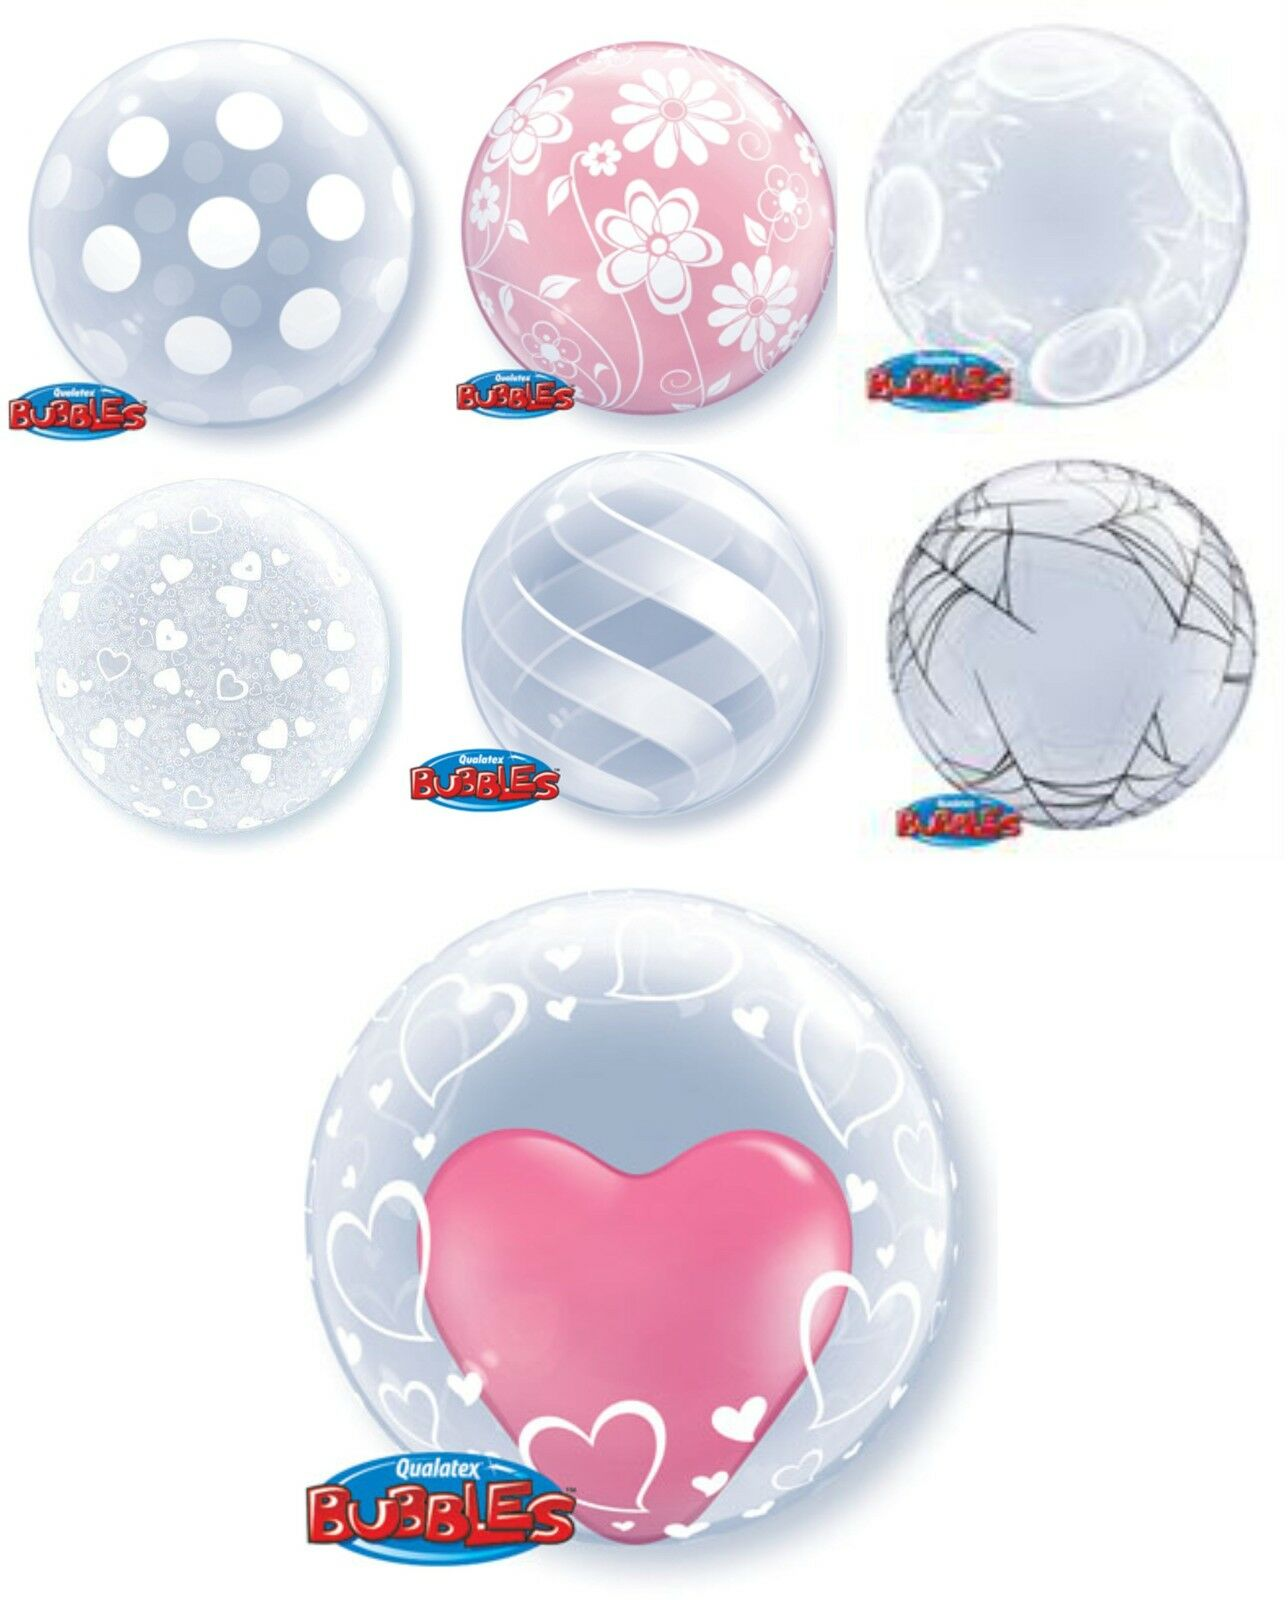 QUALATEX DECO BUBBLE Clear Plain Printed All Sizes 20  22  24  Shapes Designs